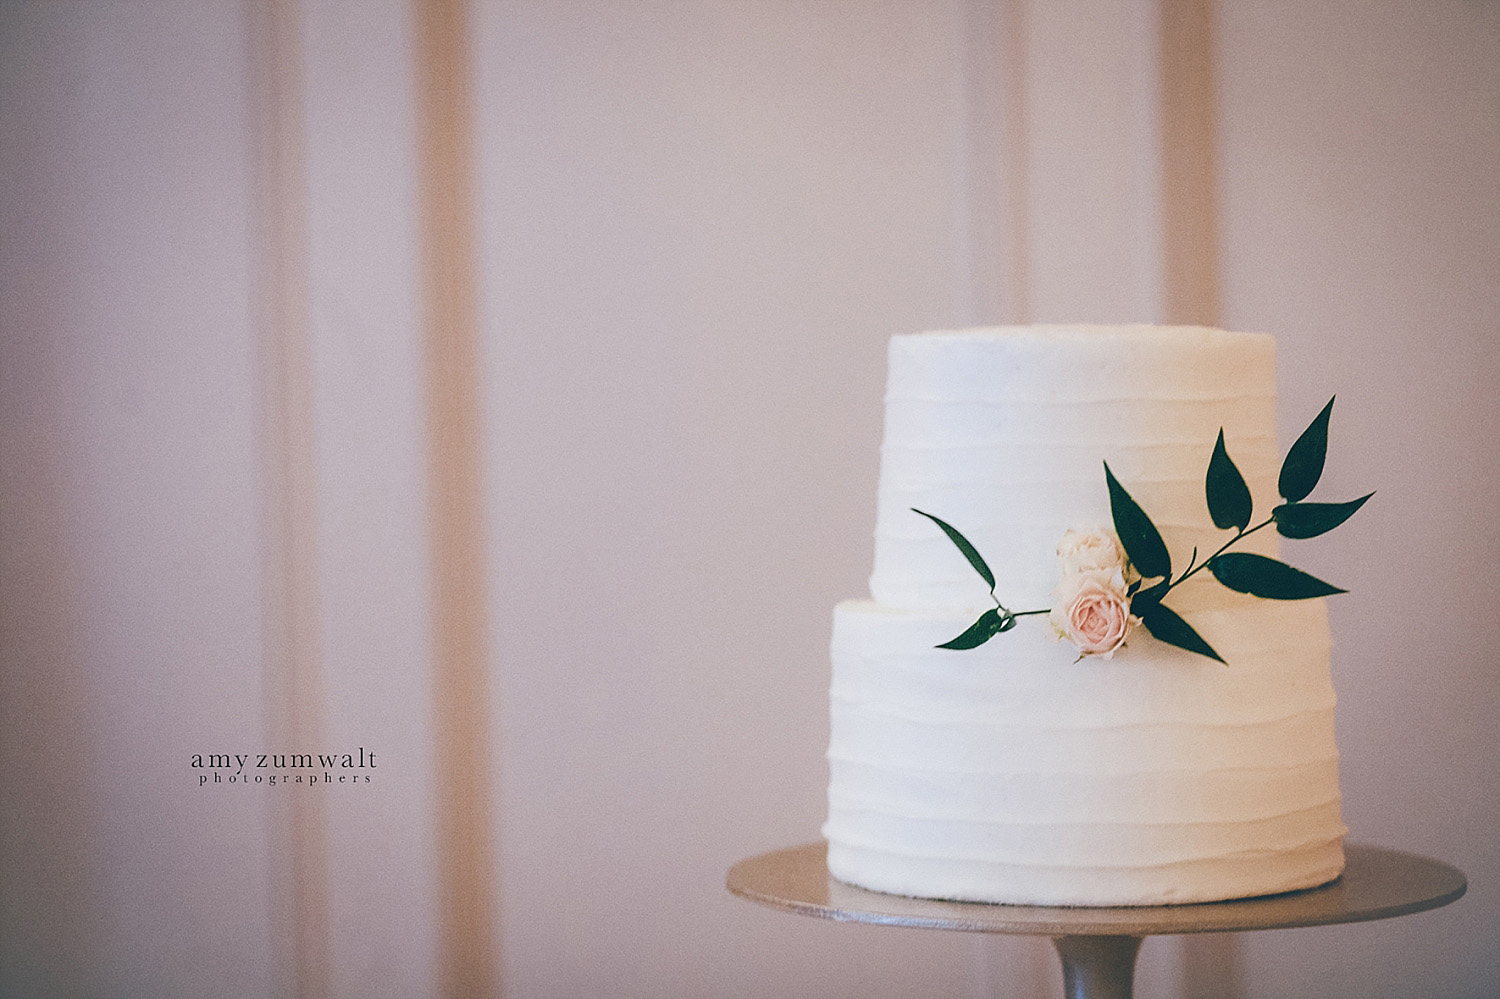 Wedding cake with one flower and greenery on gold stand